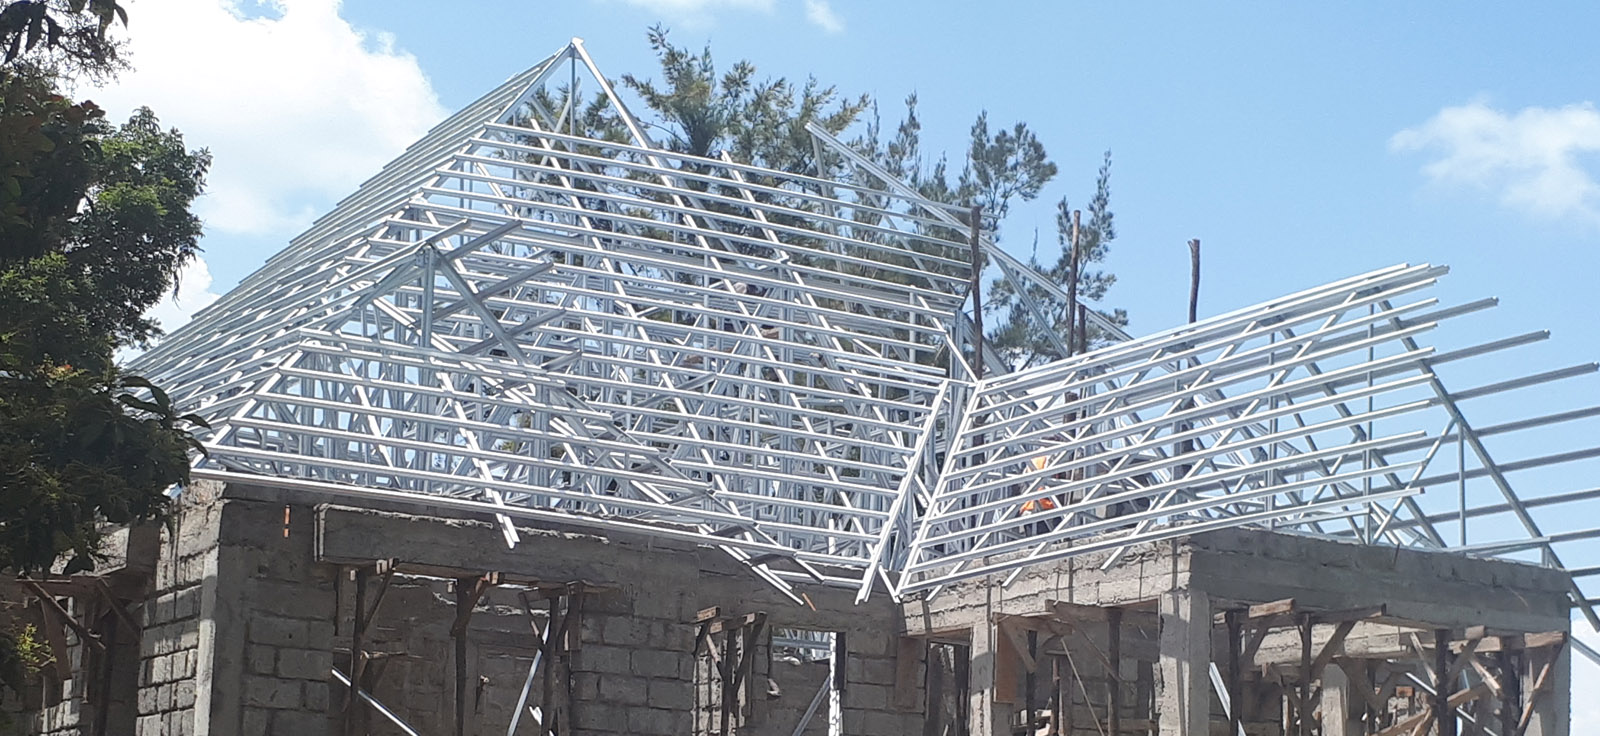 Fix Kenya Engineering and Construction Limited Products and Services - LIGHTGAUGE STEEL TRUSS SYSTEMS 1